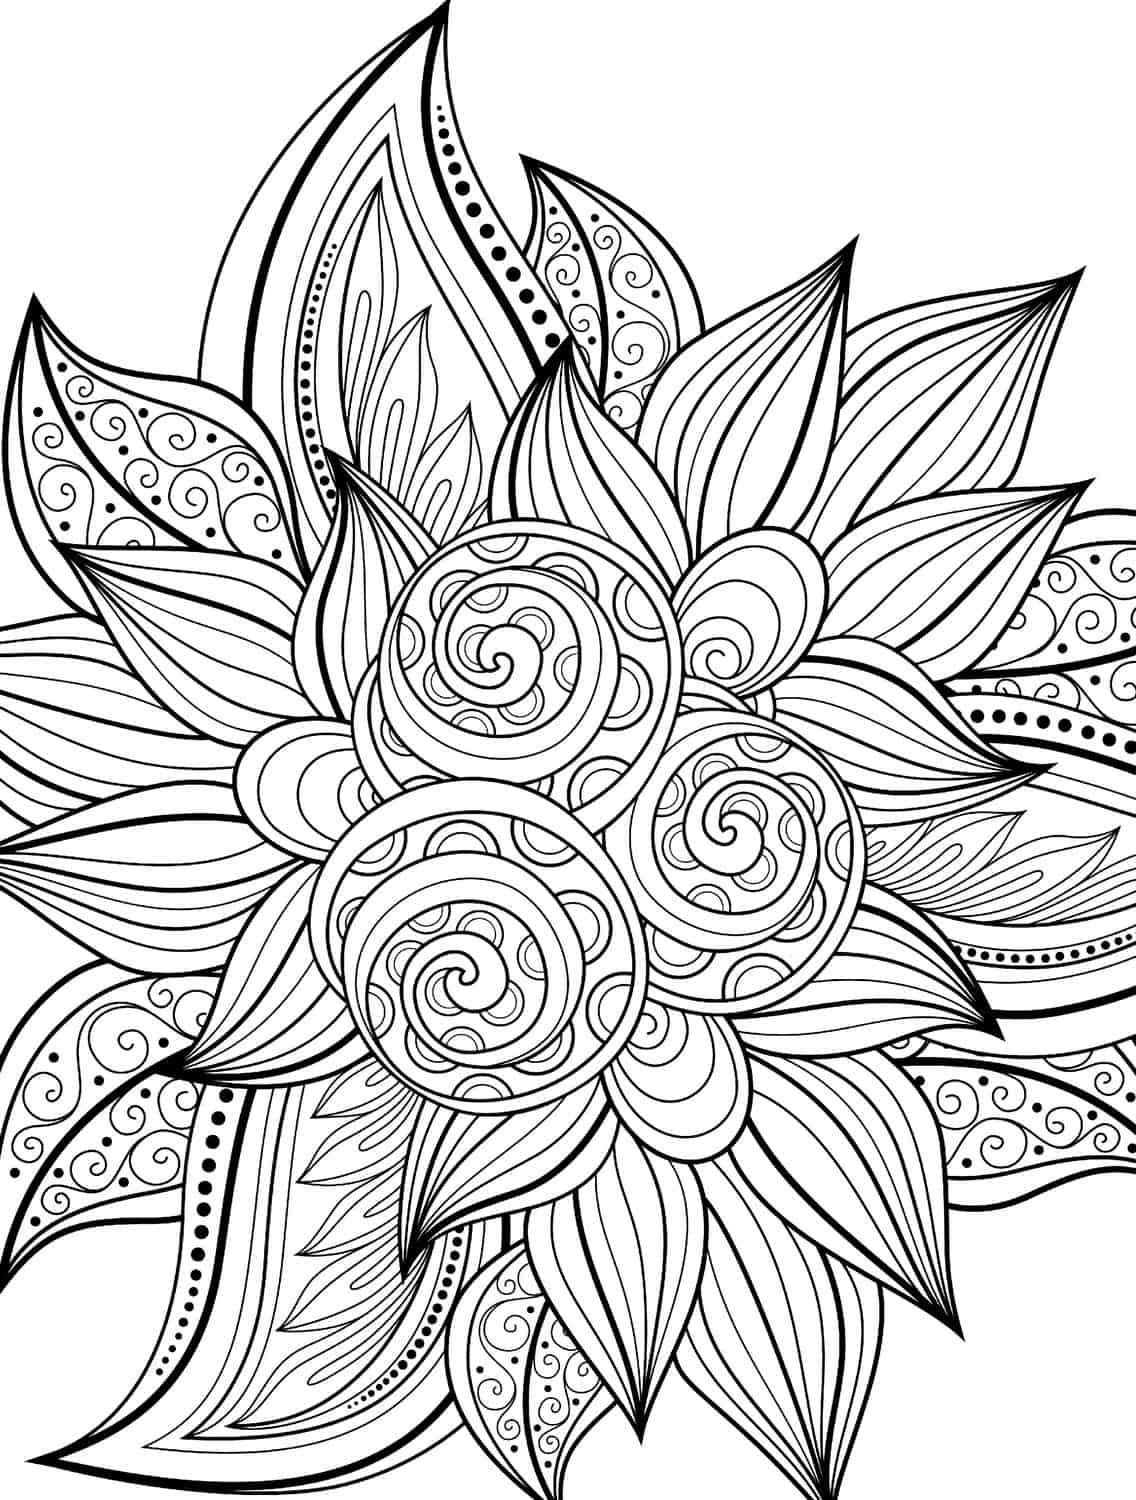 coloring books for adults online awesome free coloring pages coloring home adults online books coloring for